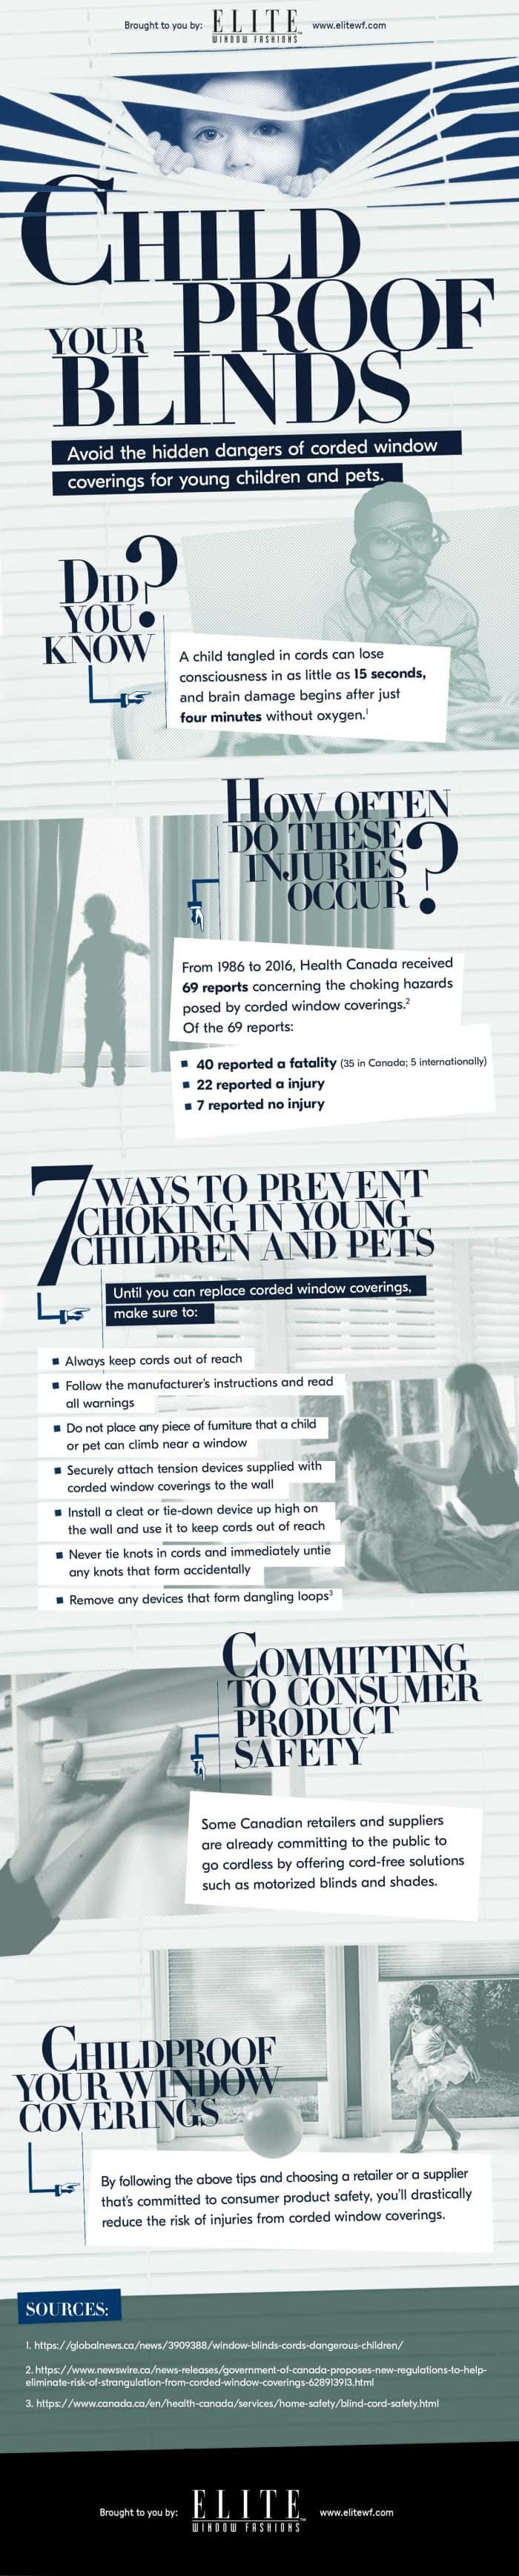 cordless blinds benefits infographic